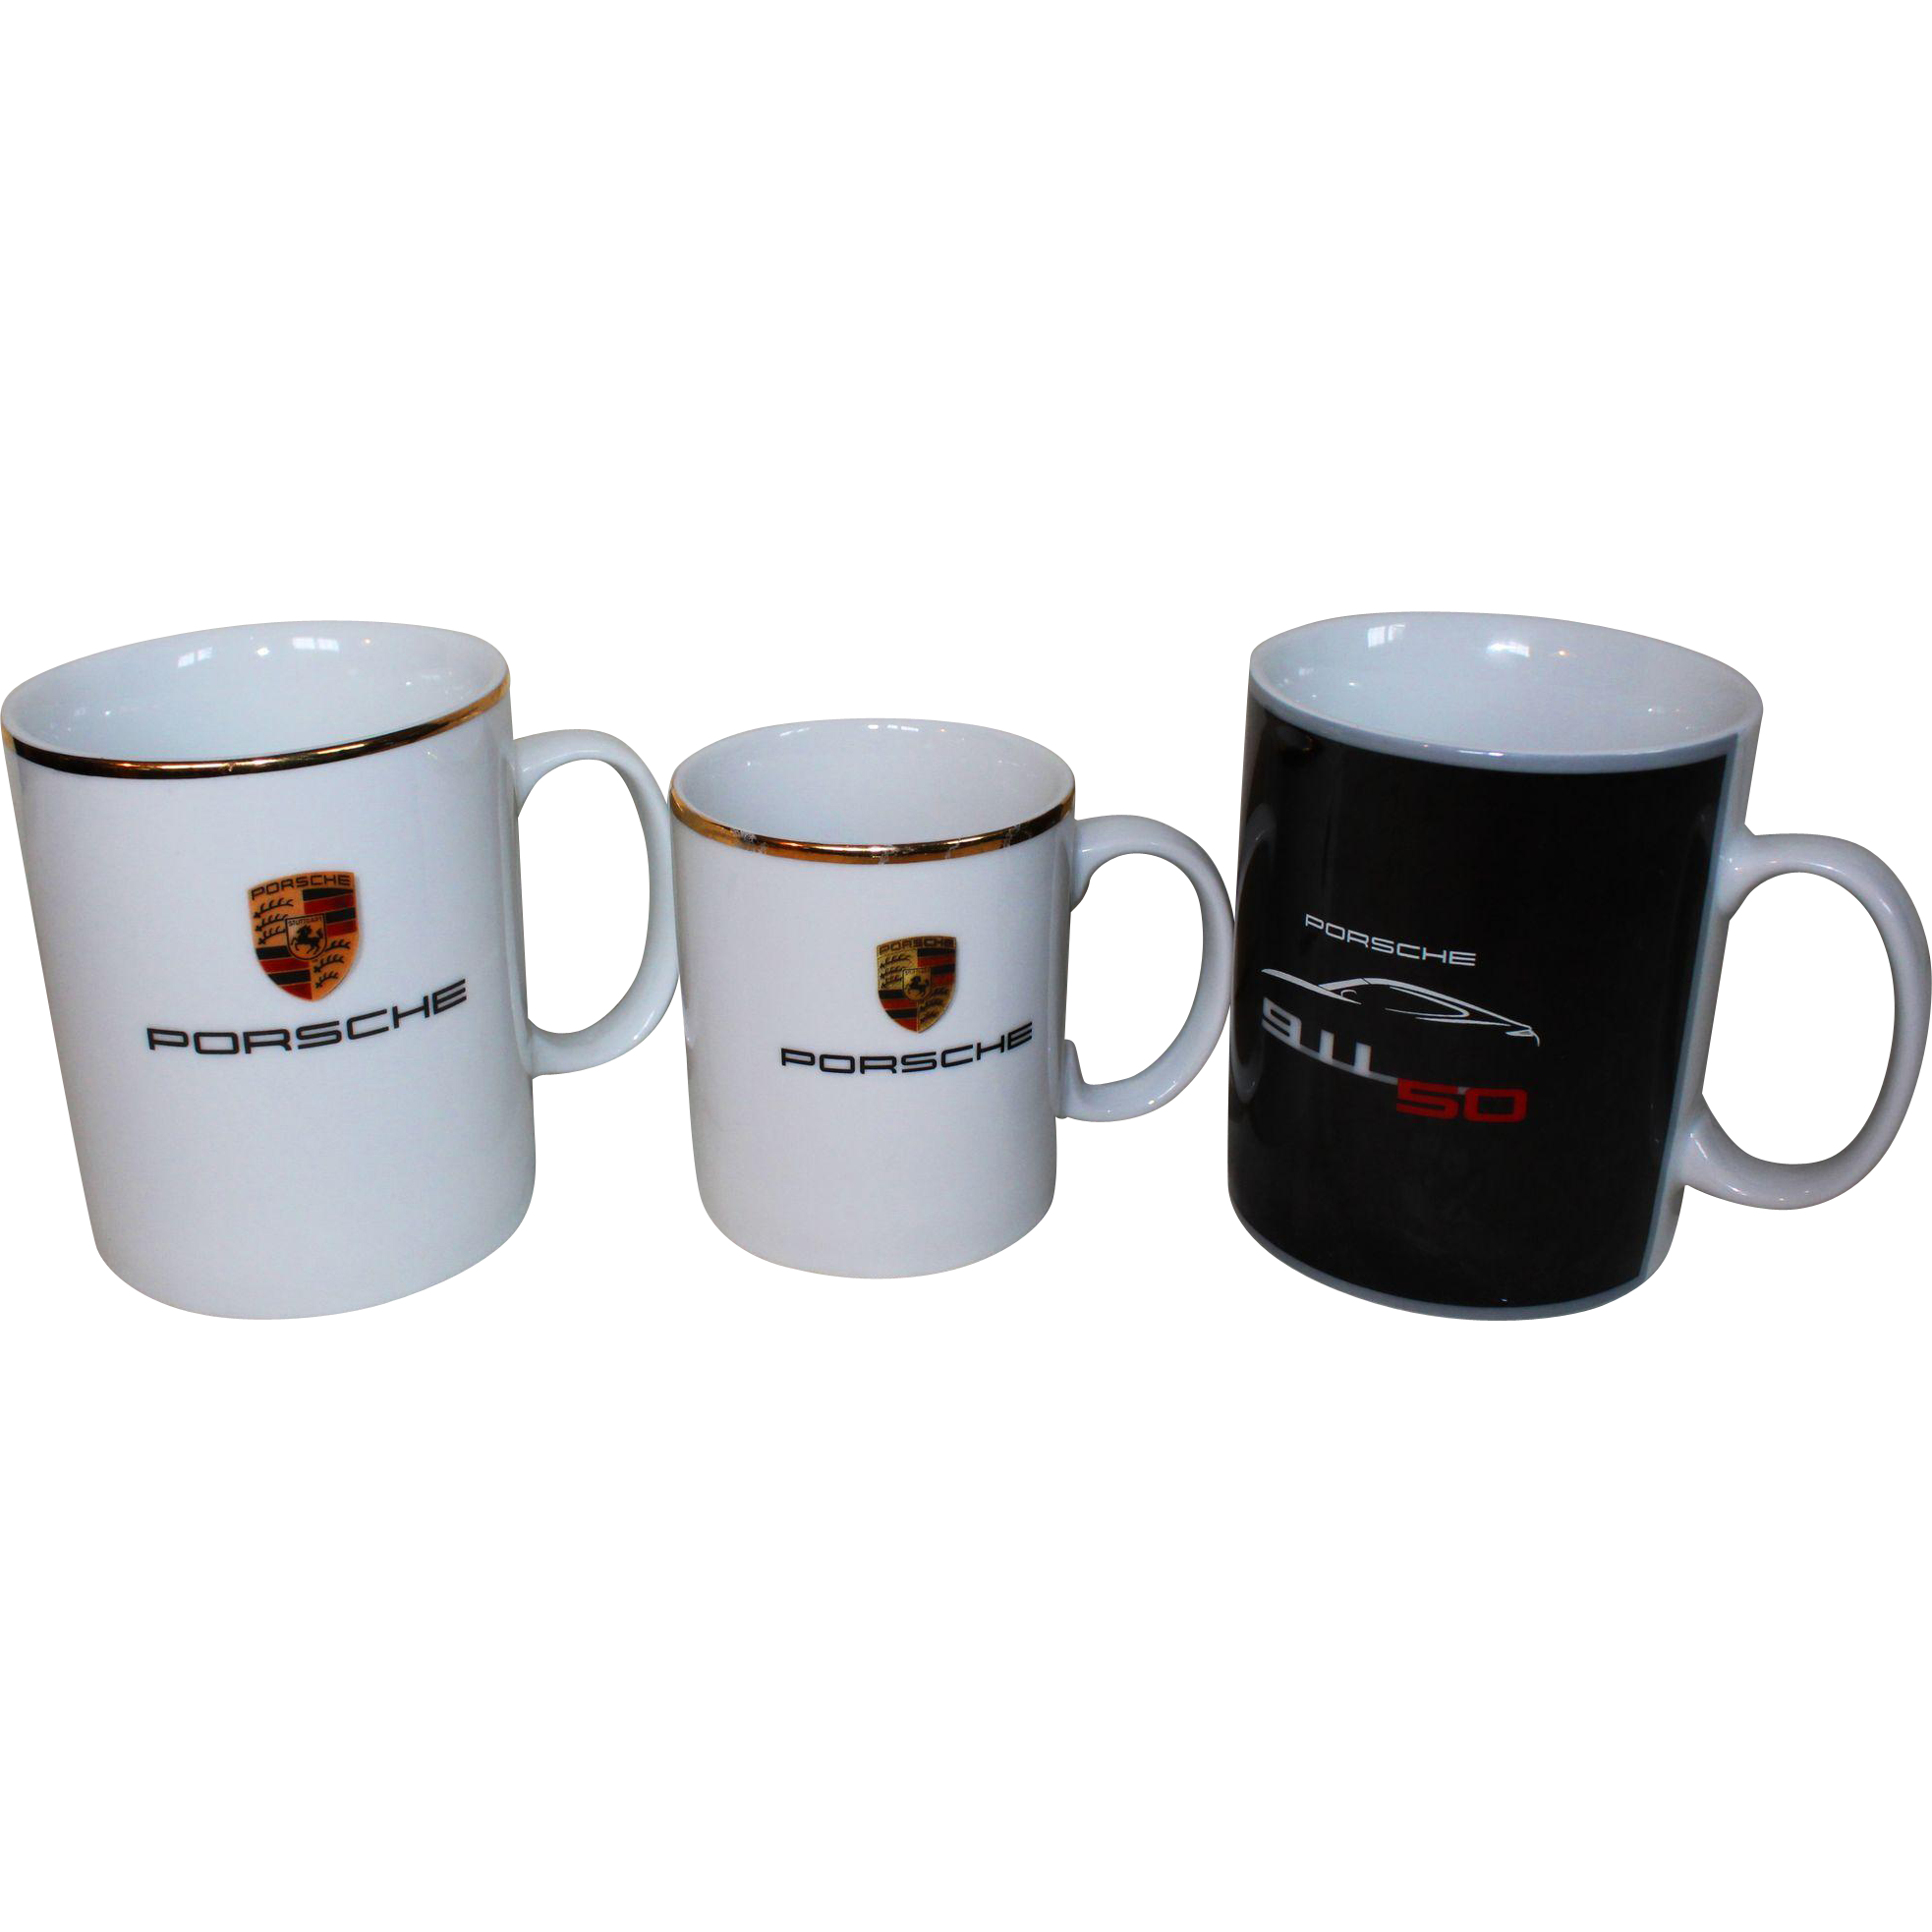 Porsche Coffee Mugs